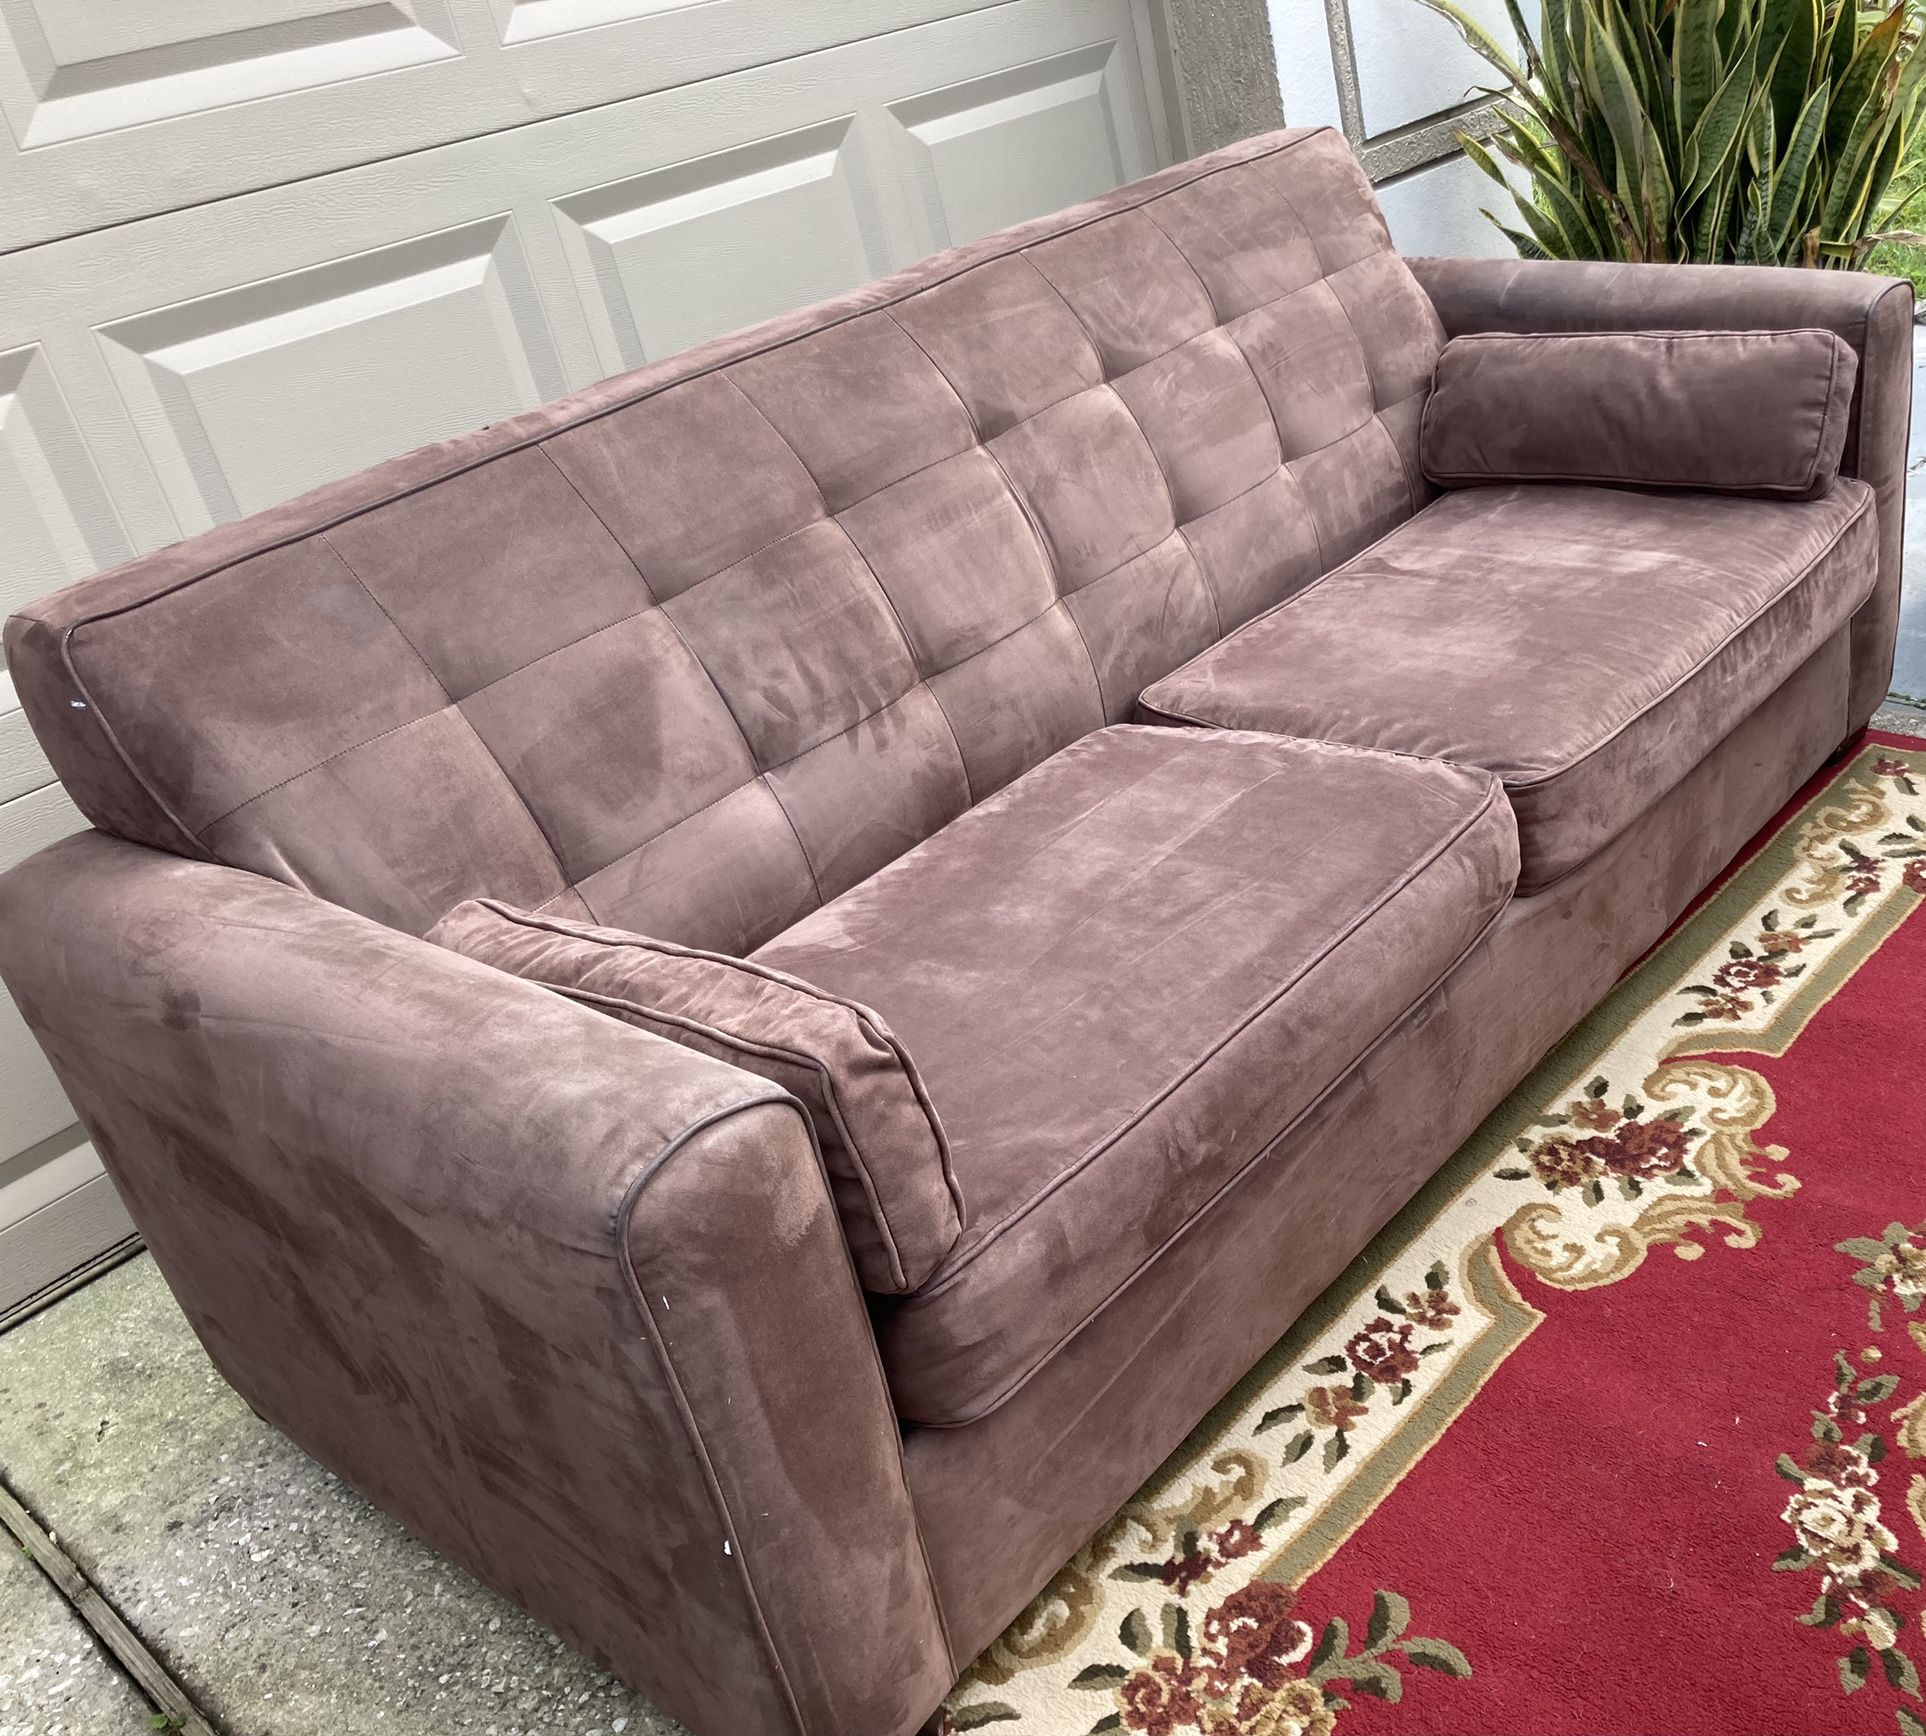 Taupe/ Light Brown Couch *Great Condition*